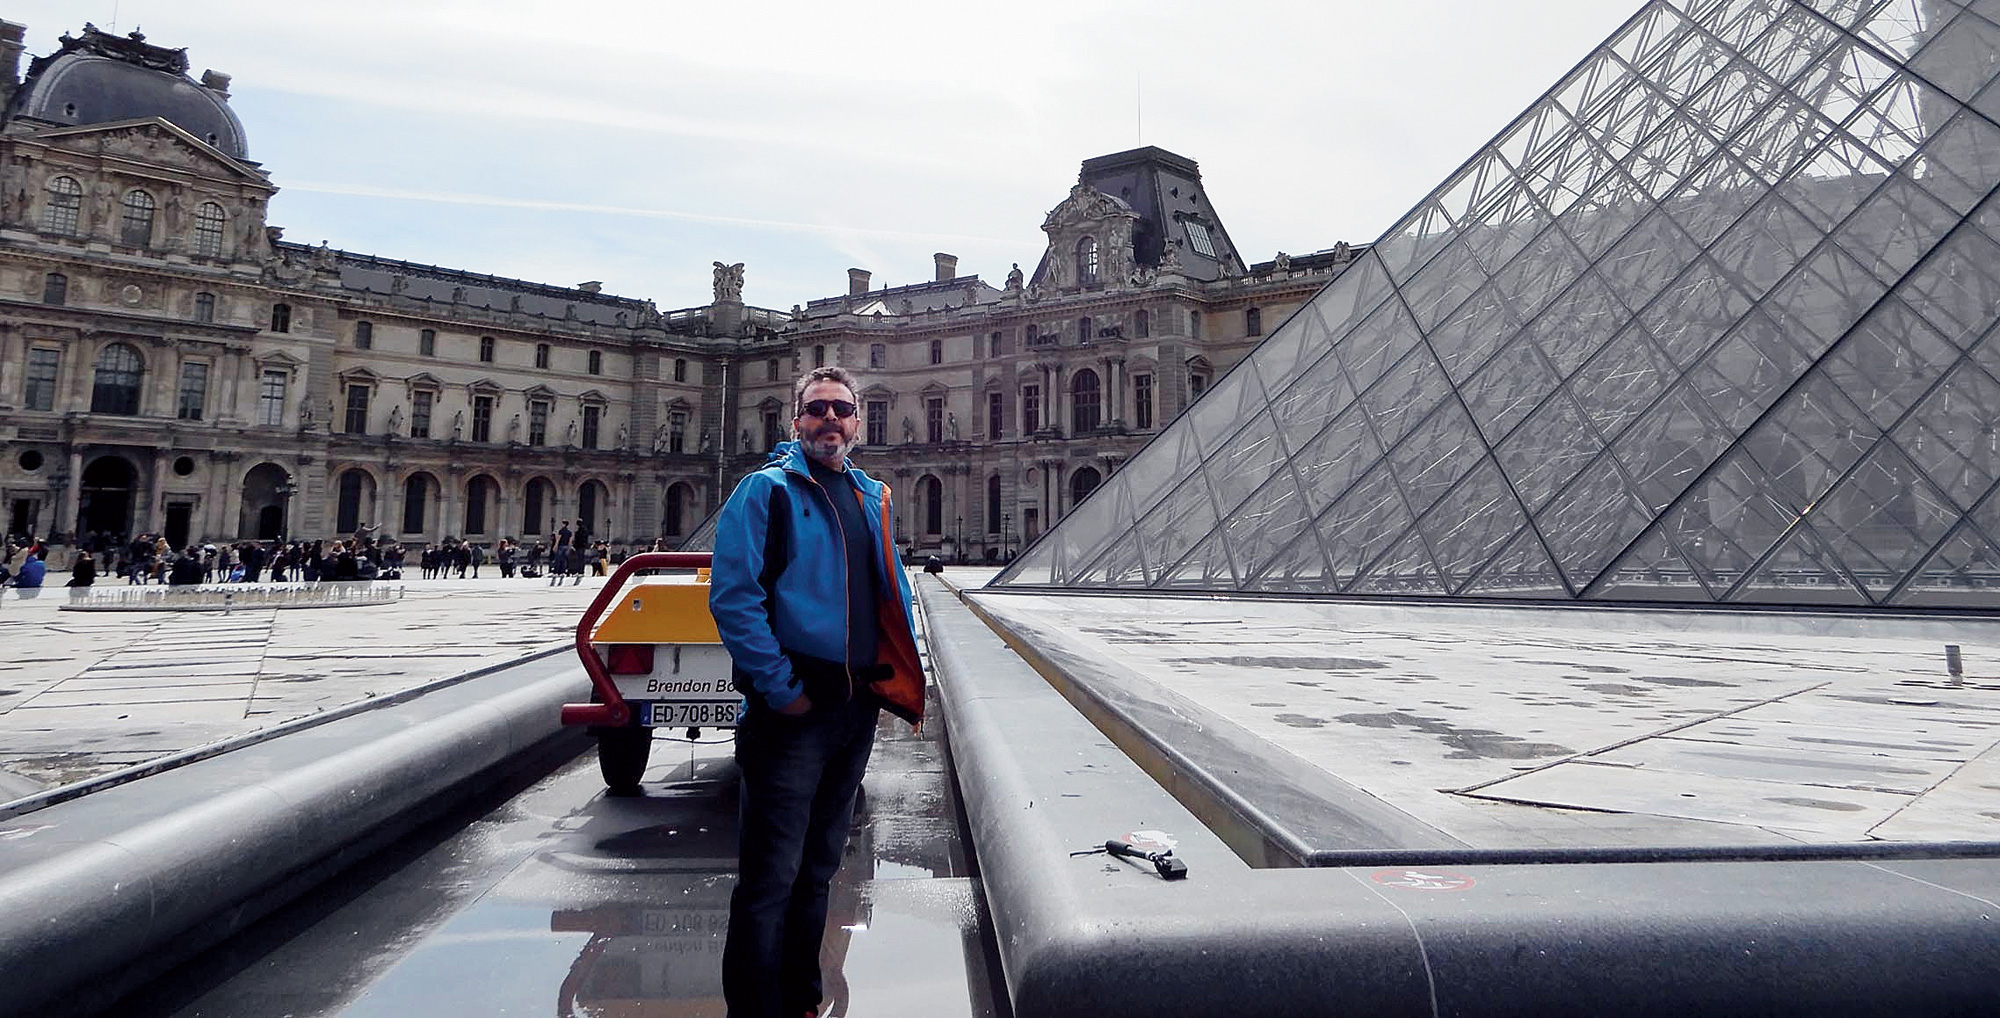 Joydeep Karmakar in front of the Louvre on April 5, the same day he visited Notre-Dame cathedral. Karmakar had represented India at the 2012 London Olympics in the men's 50m rifle prone event.